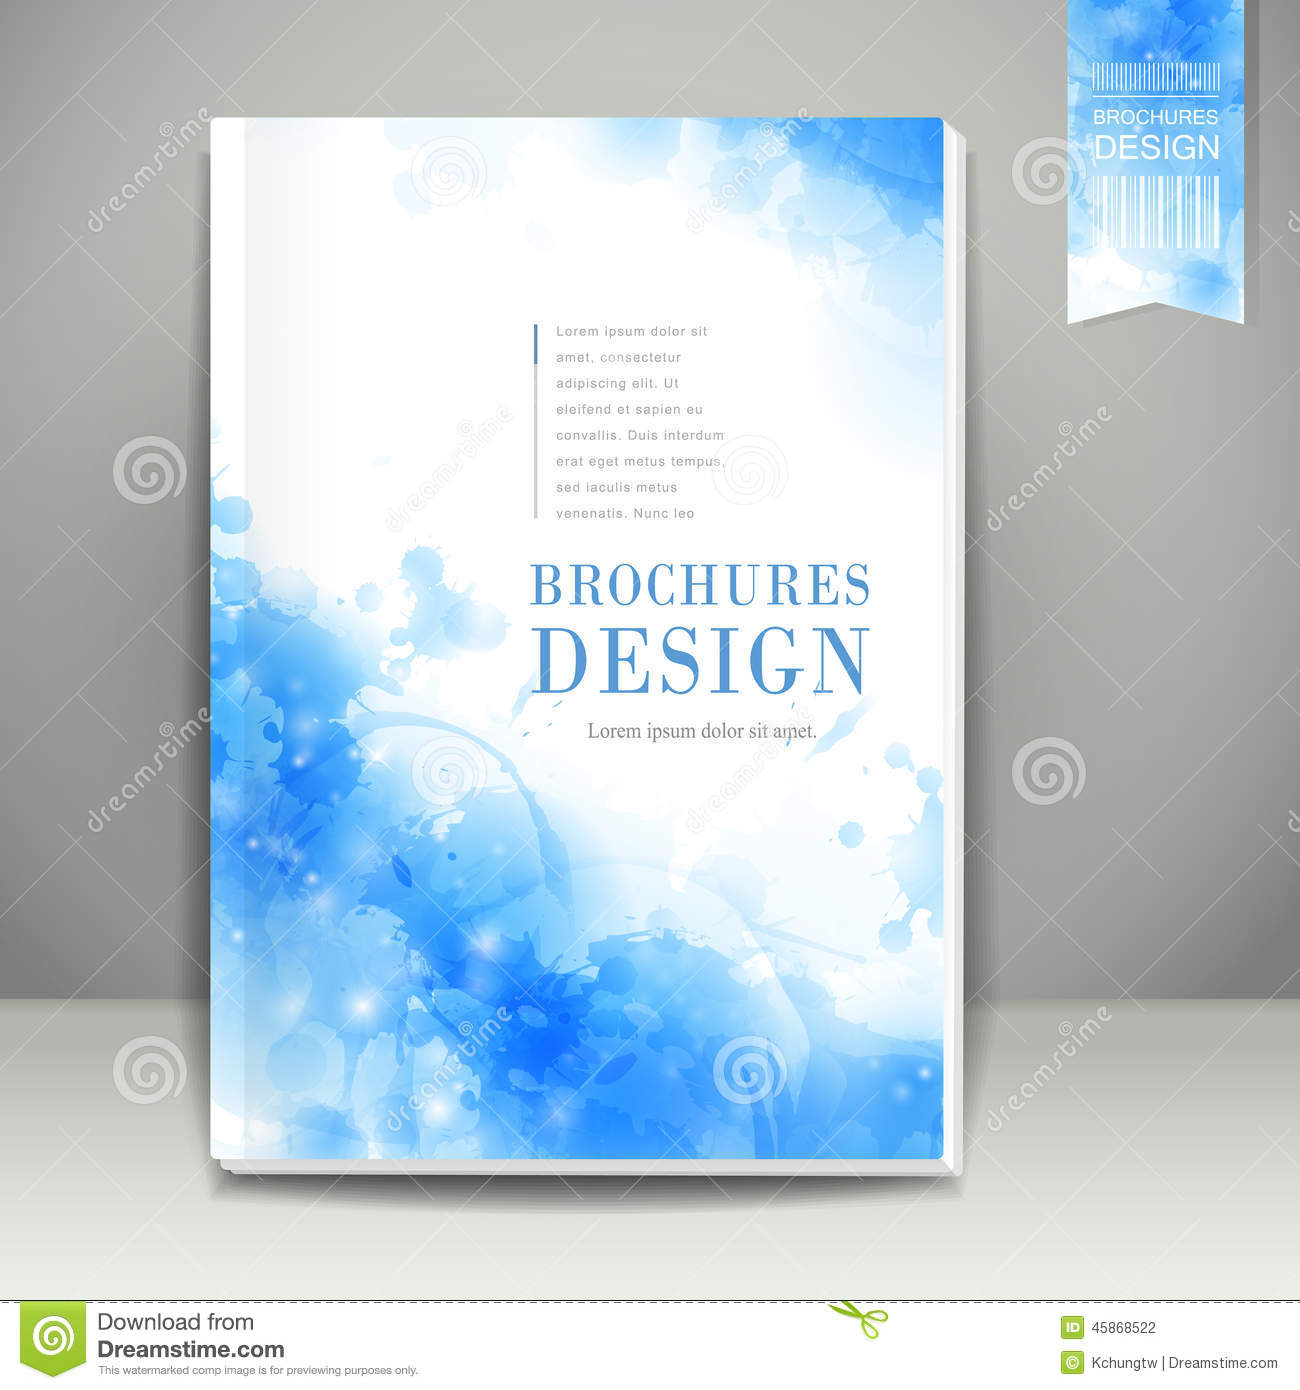 Book Cover Design Template Ks : Watercolor style background design for book cover stock